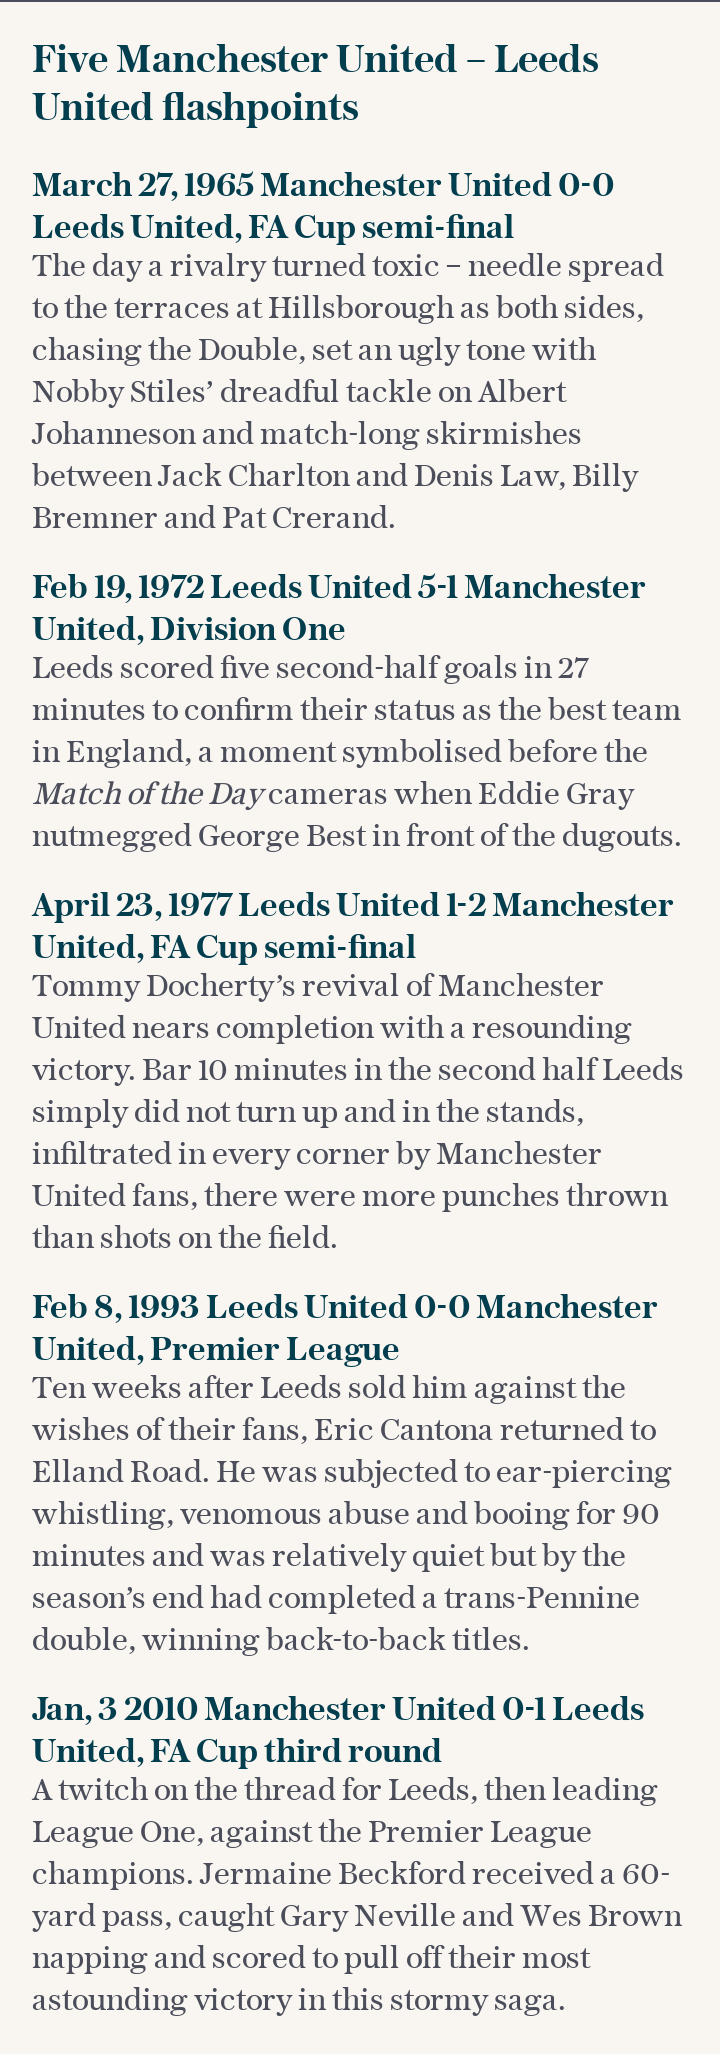 Five Manchester United – Leeds United flashpoints